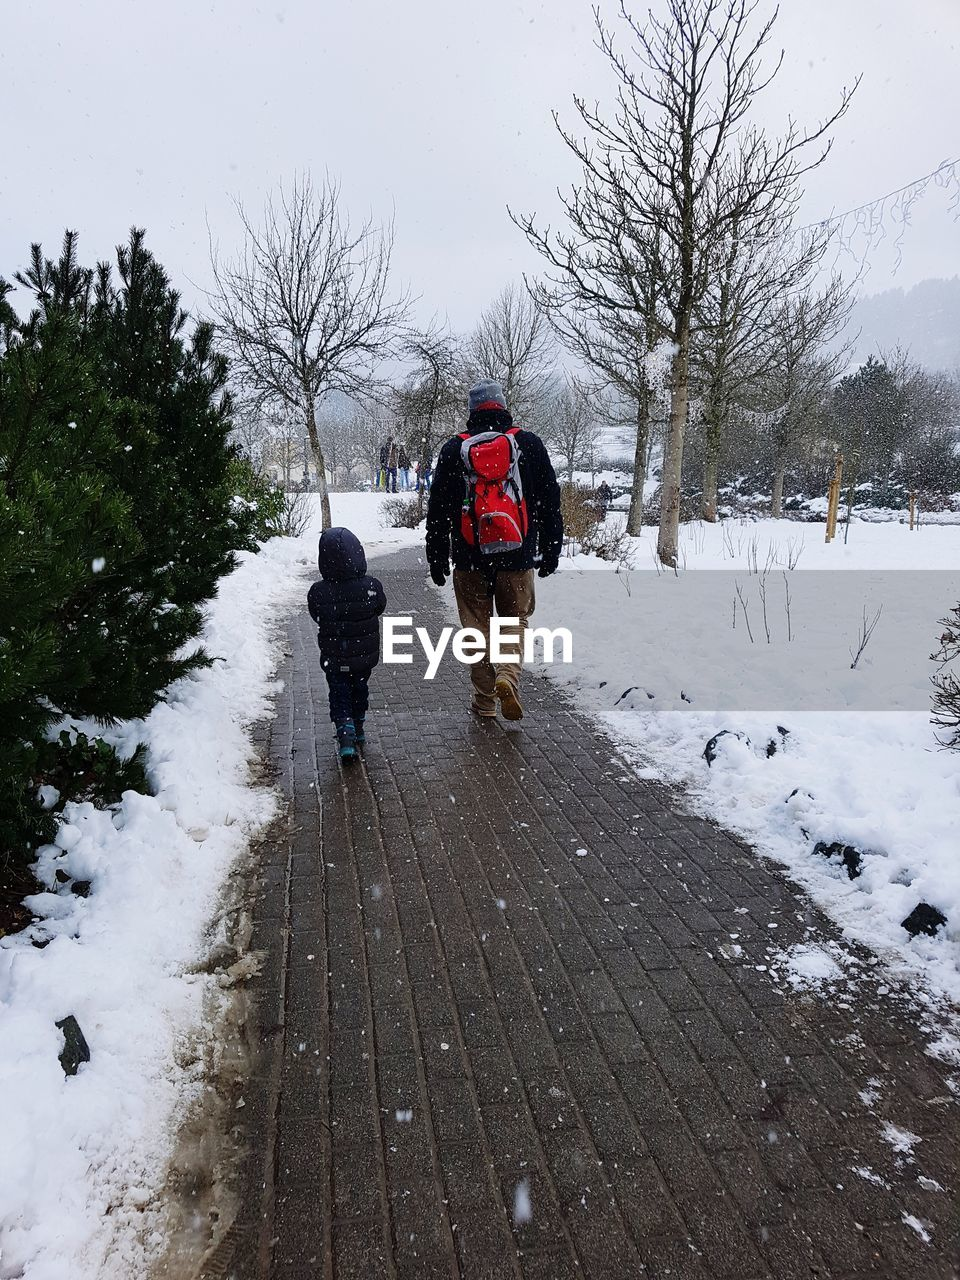 snow, winter, cold temperature, tree, real people, warm clothing, men, nature, two people, rear view, plant, full length, lifestyles, day, clothing, leisure activity, togetherness, women, white color, outdoors, snowing